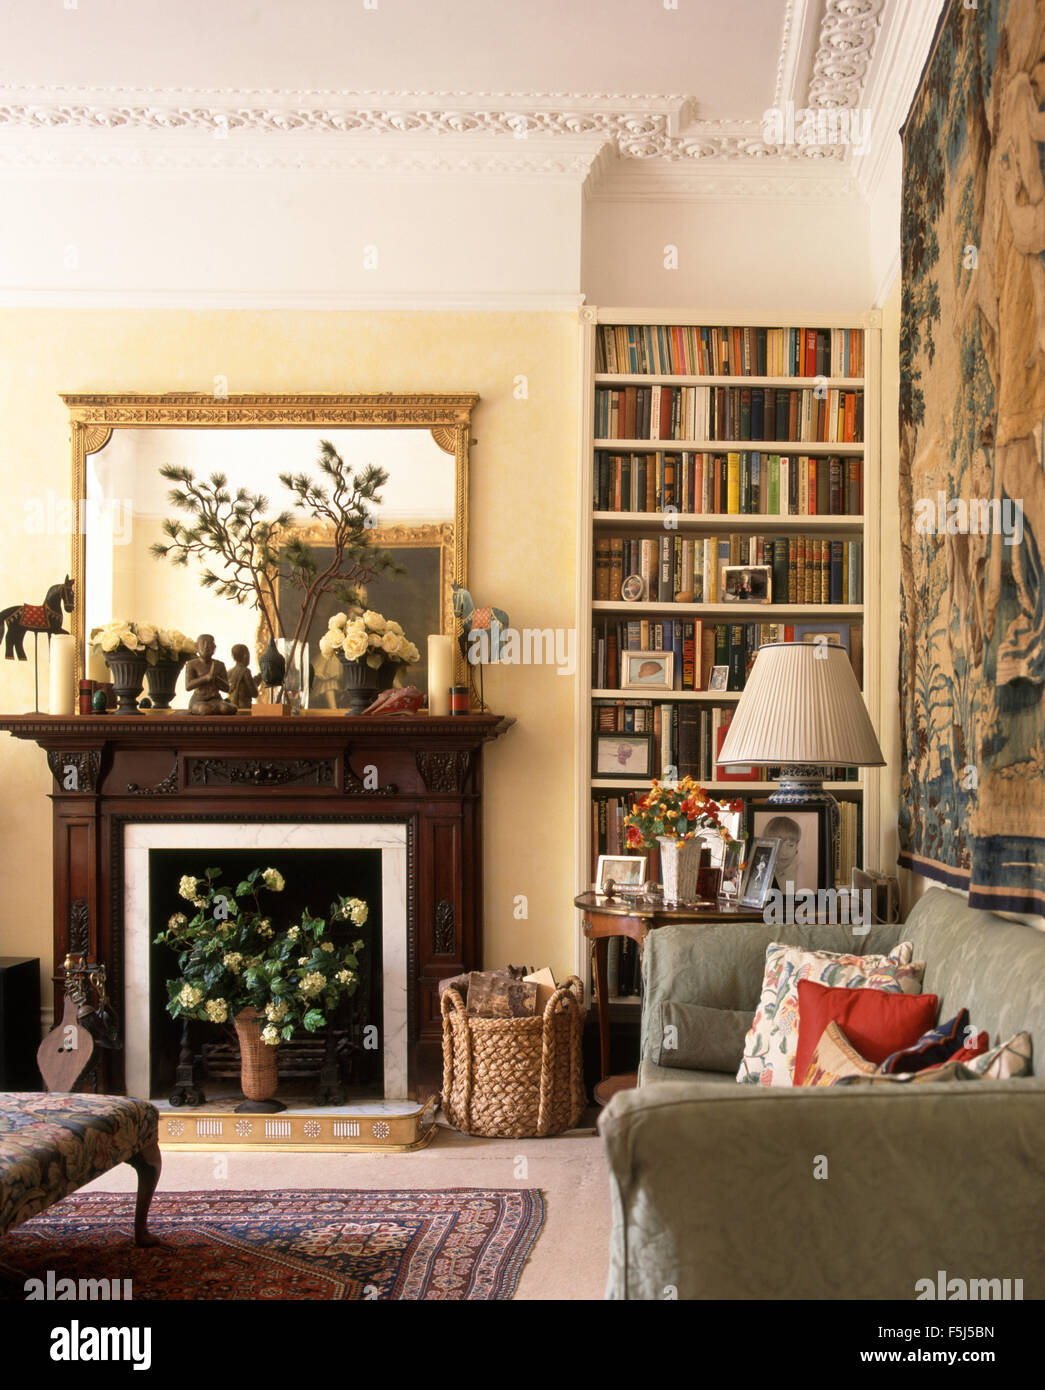 Gilt Mirror Above Fireplace In A Very Traditional Living Room With Bookshelves And Gray Sofa